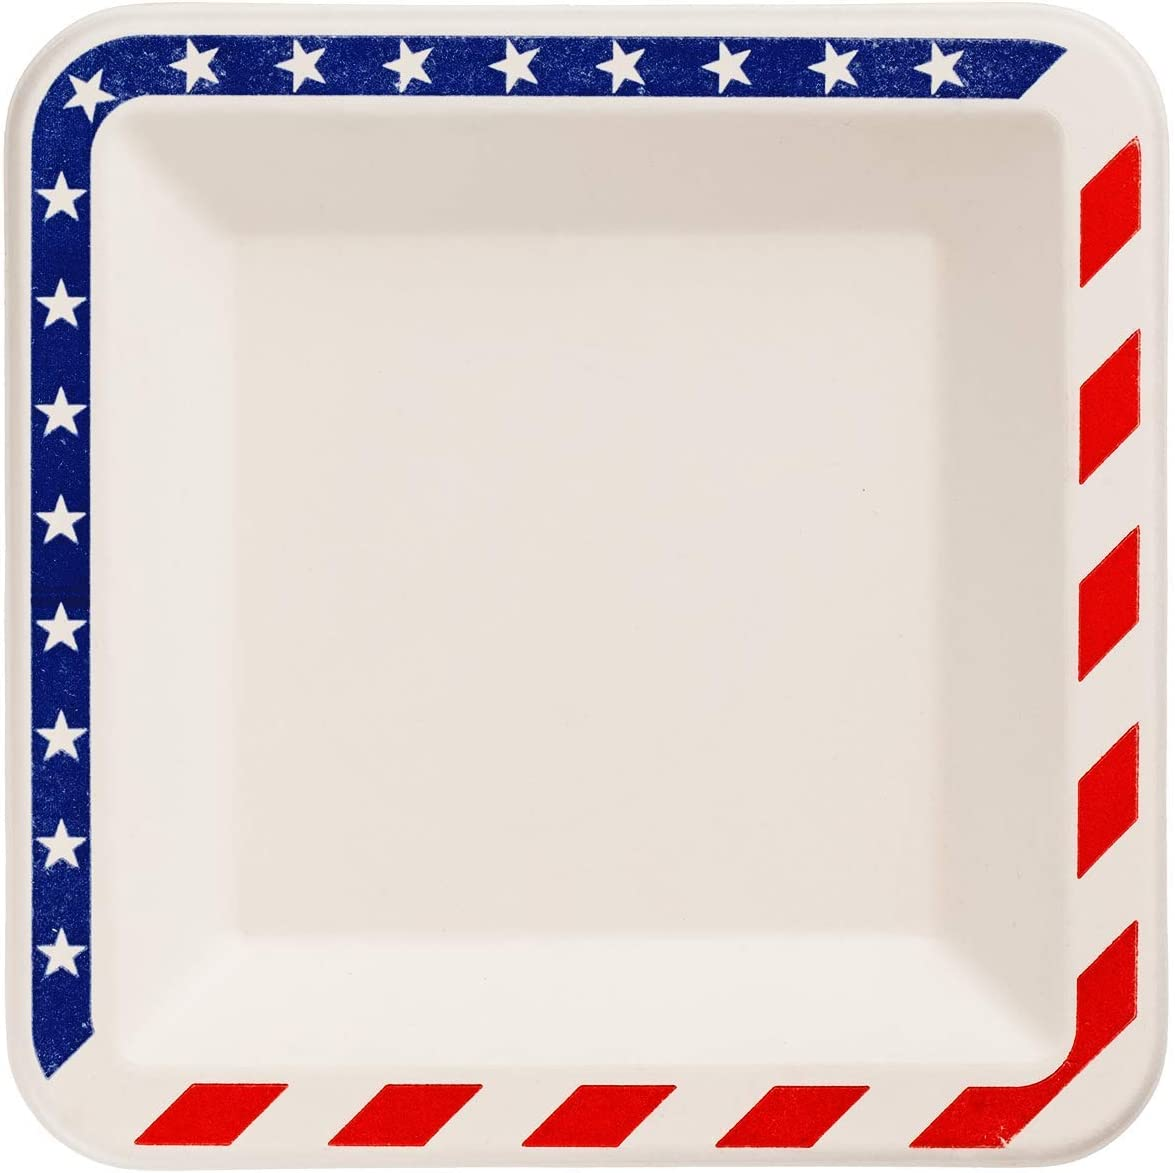 6.5-inch American Flag Patriotic Disposable Compostable Square Paper Plates, Made from Eco-friendly Plant Fibers [50 COUNT]